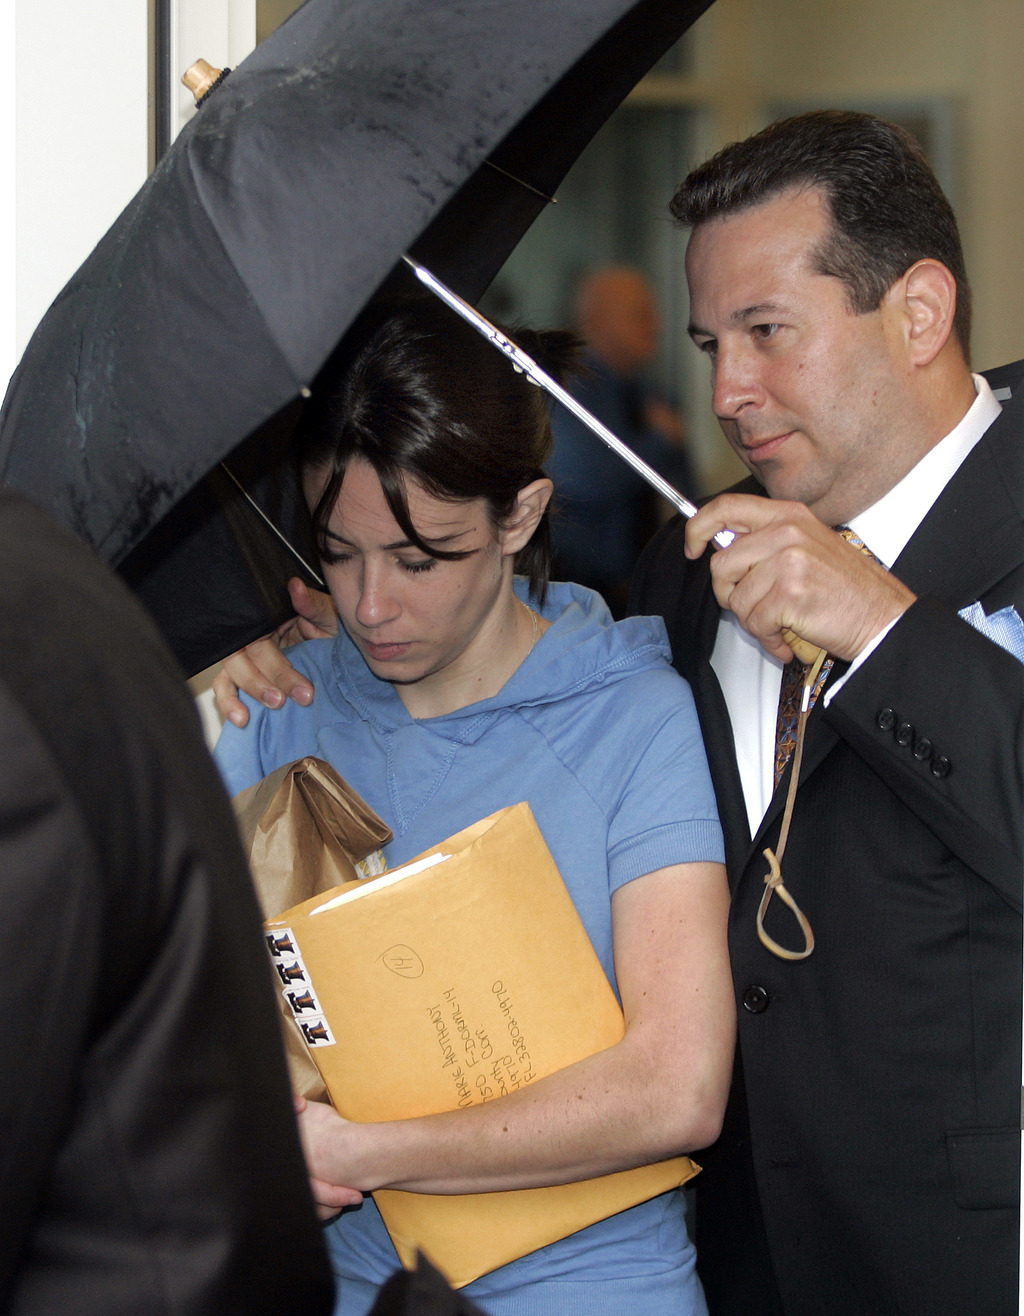 FILE- In this Aug. 21, 2008, file photo, Casey Anthony, mother of missing toddler Caylee, is escorted from the Orange County Florida ja...